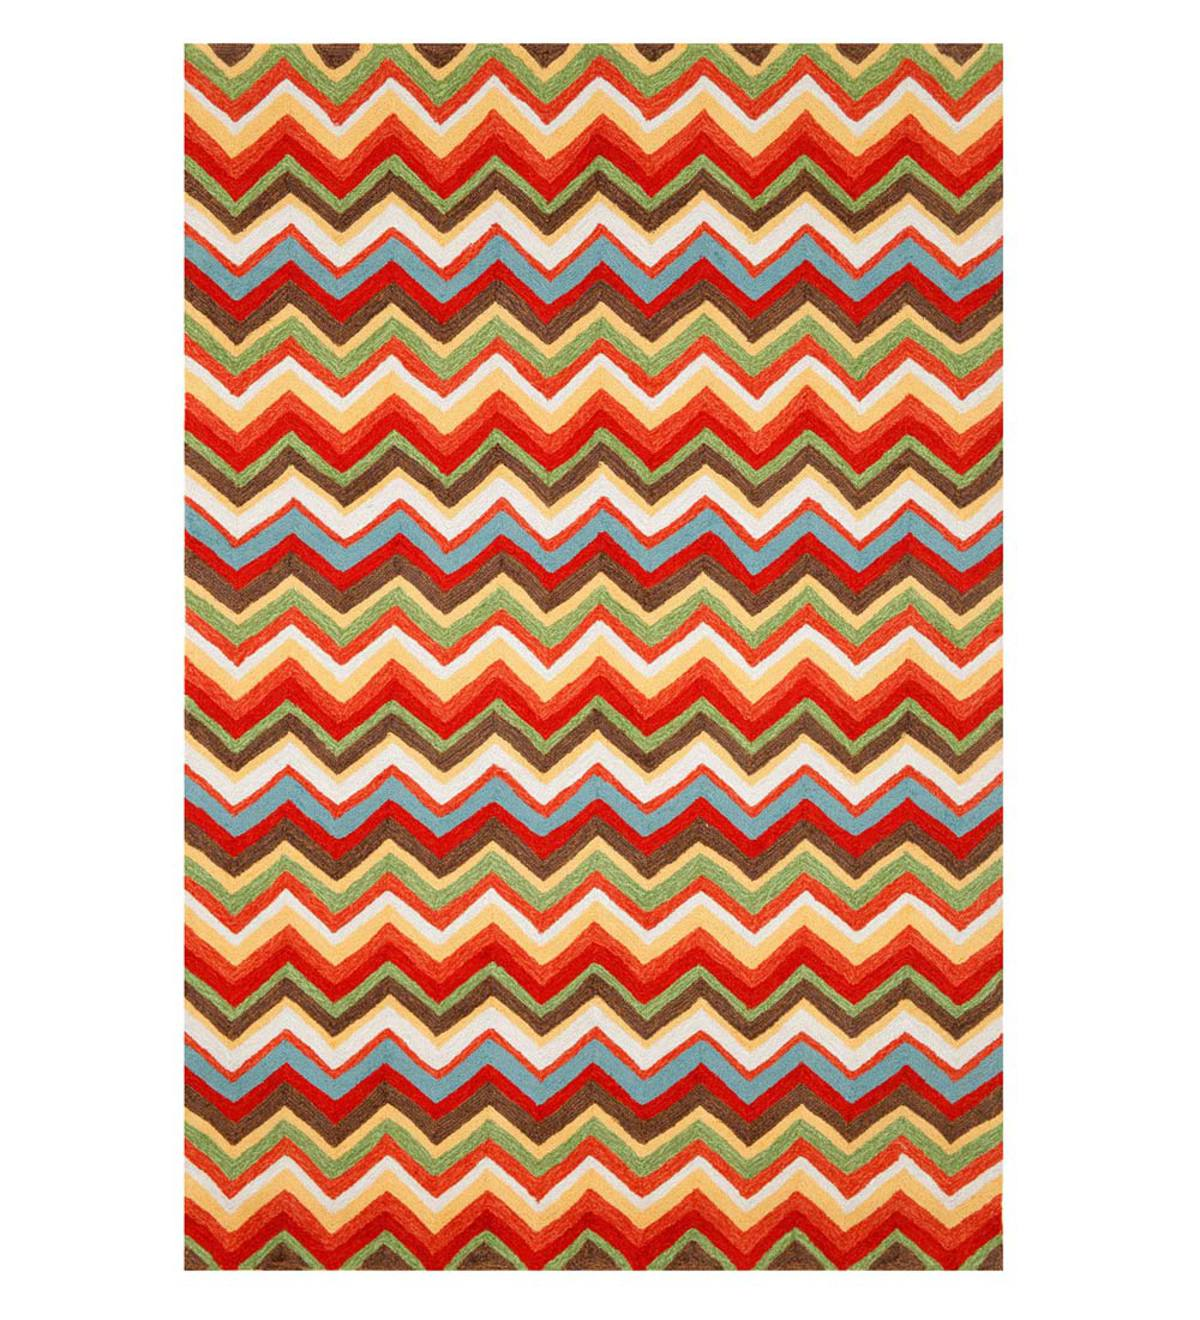 ZigZag-Pattern Graphic Accent Rug, 24